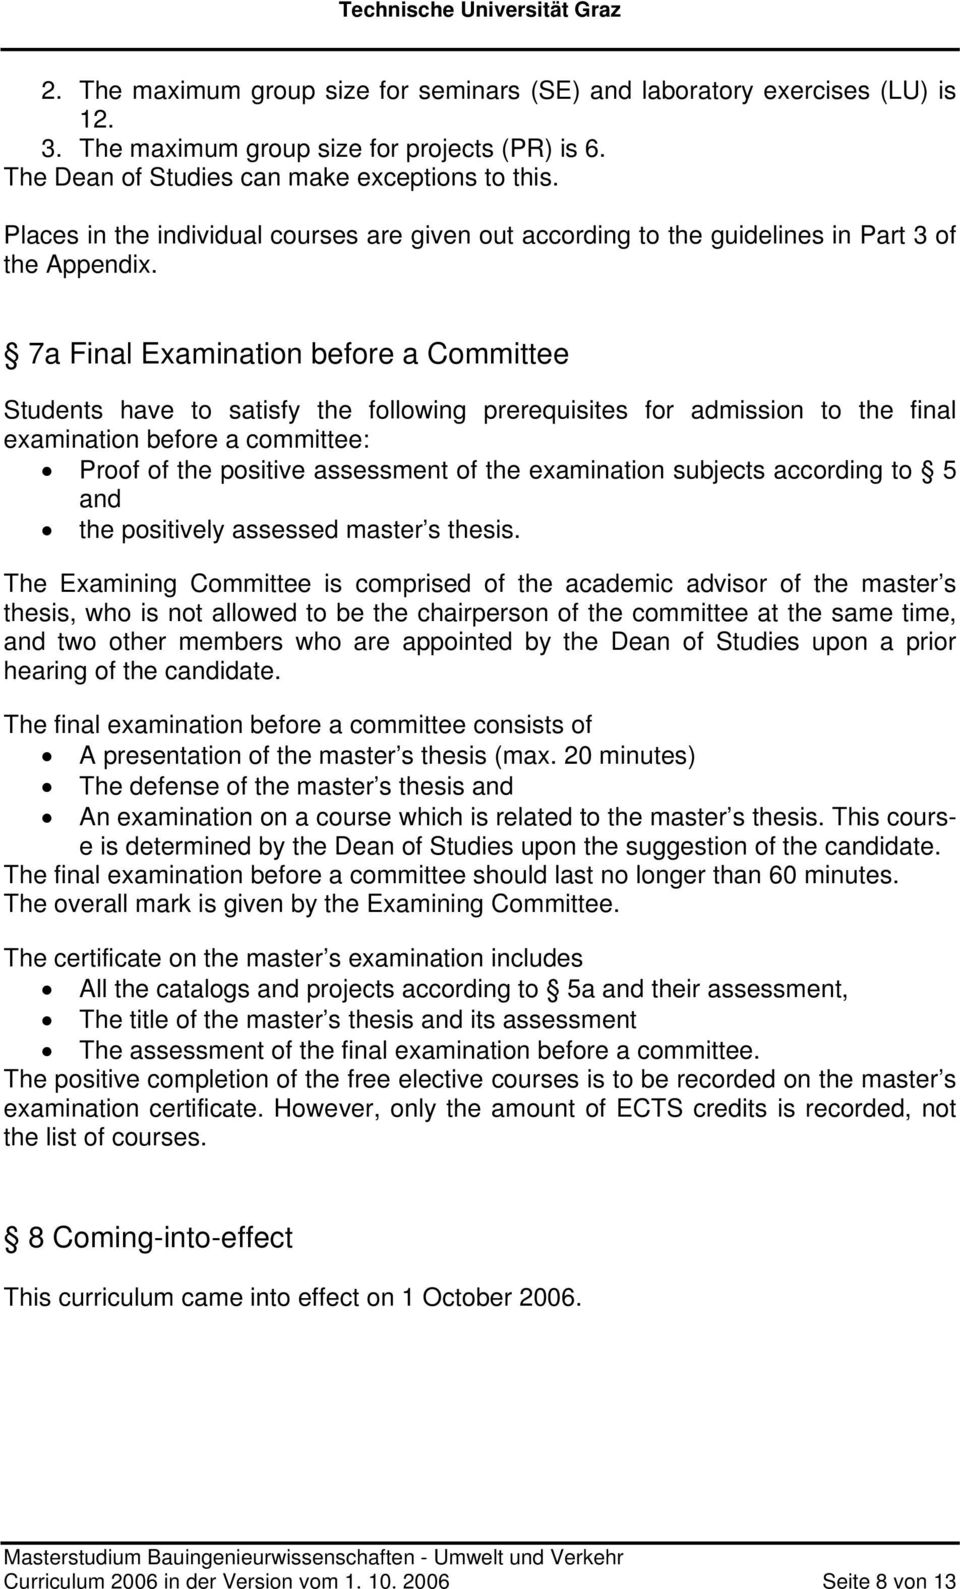 7a Final Examination before a Committee Students have to satisfy the following prerequisites for admission to the final examination before a committee: Proof of the positive assessment of the